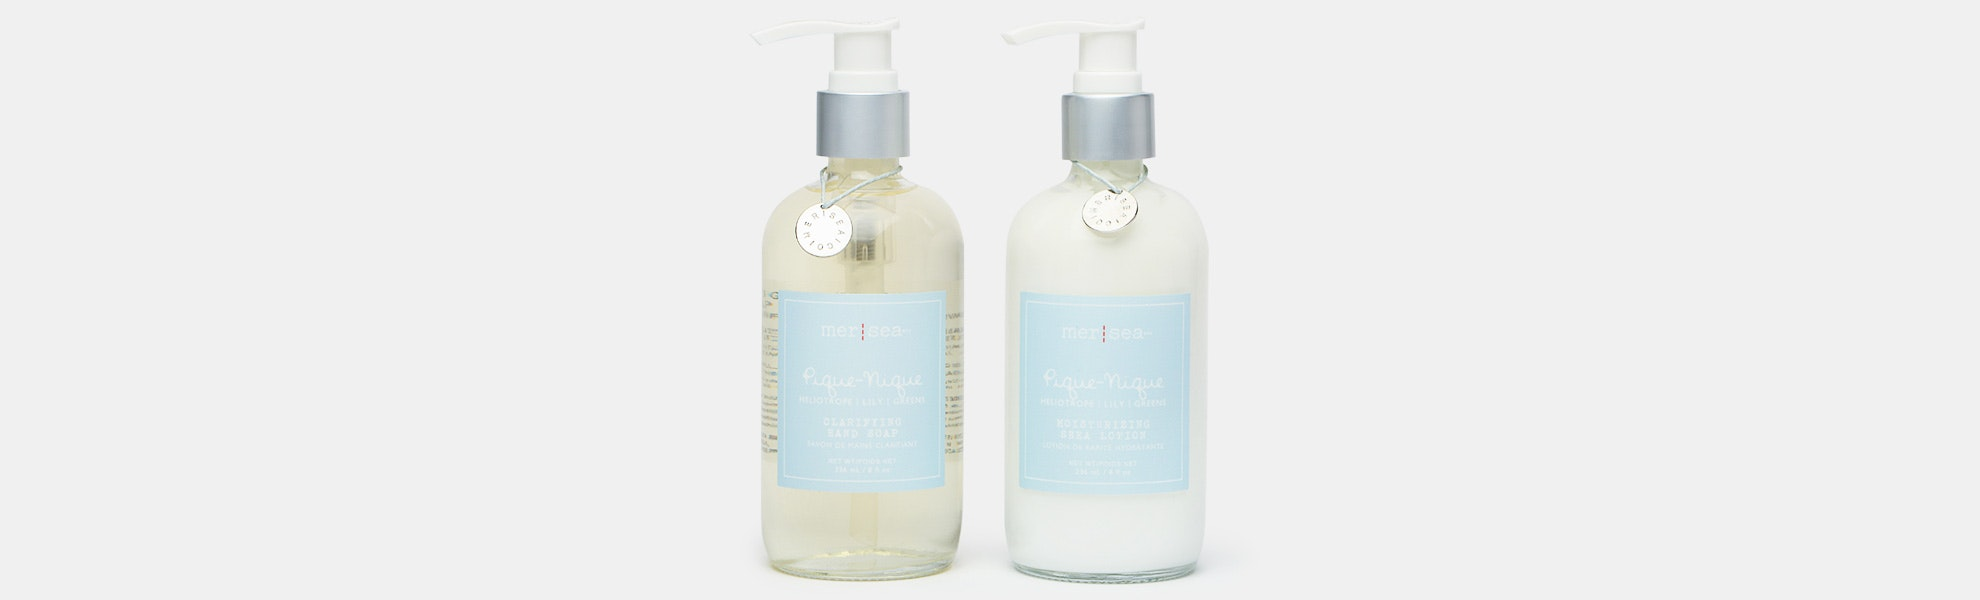 Mer-Sea & Co. Clarifying Hand Soap & Shea Lotion